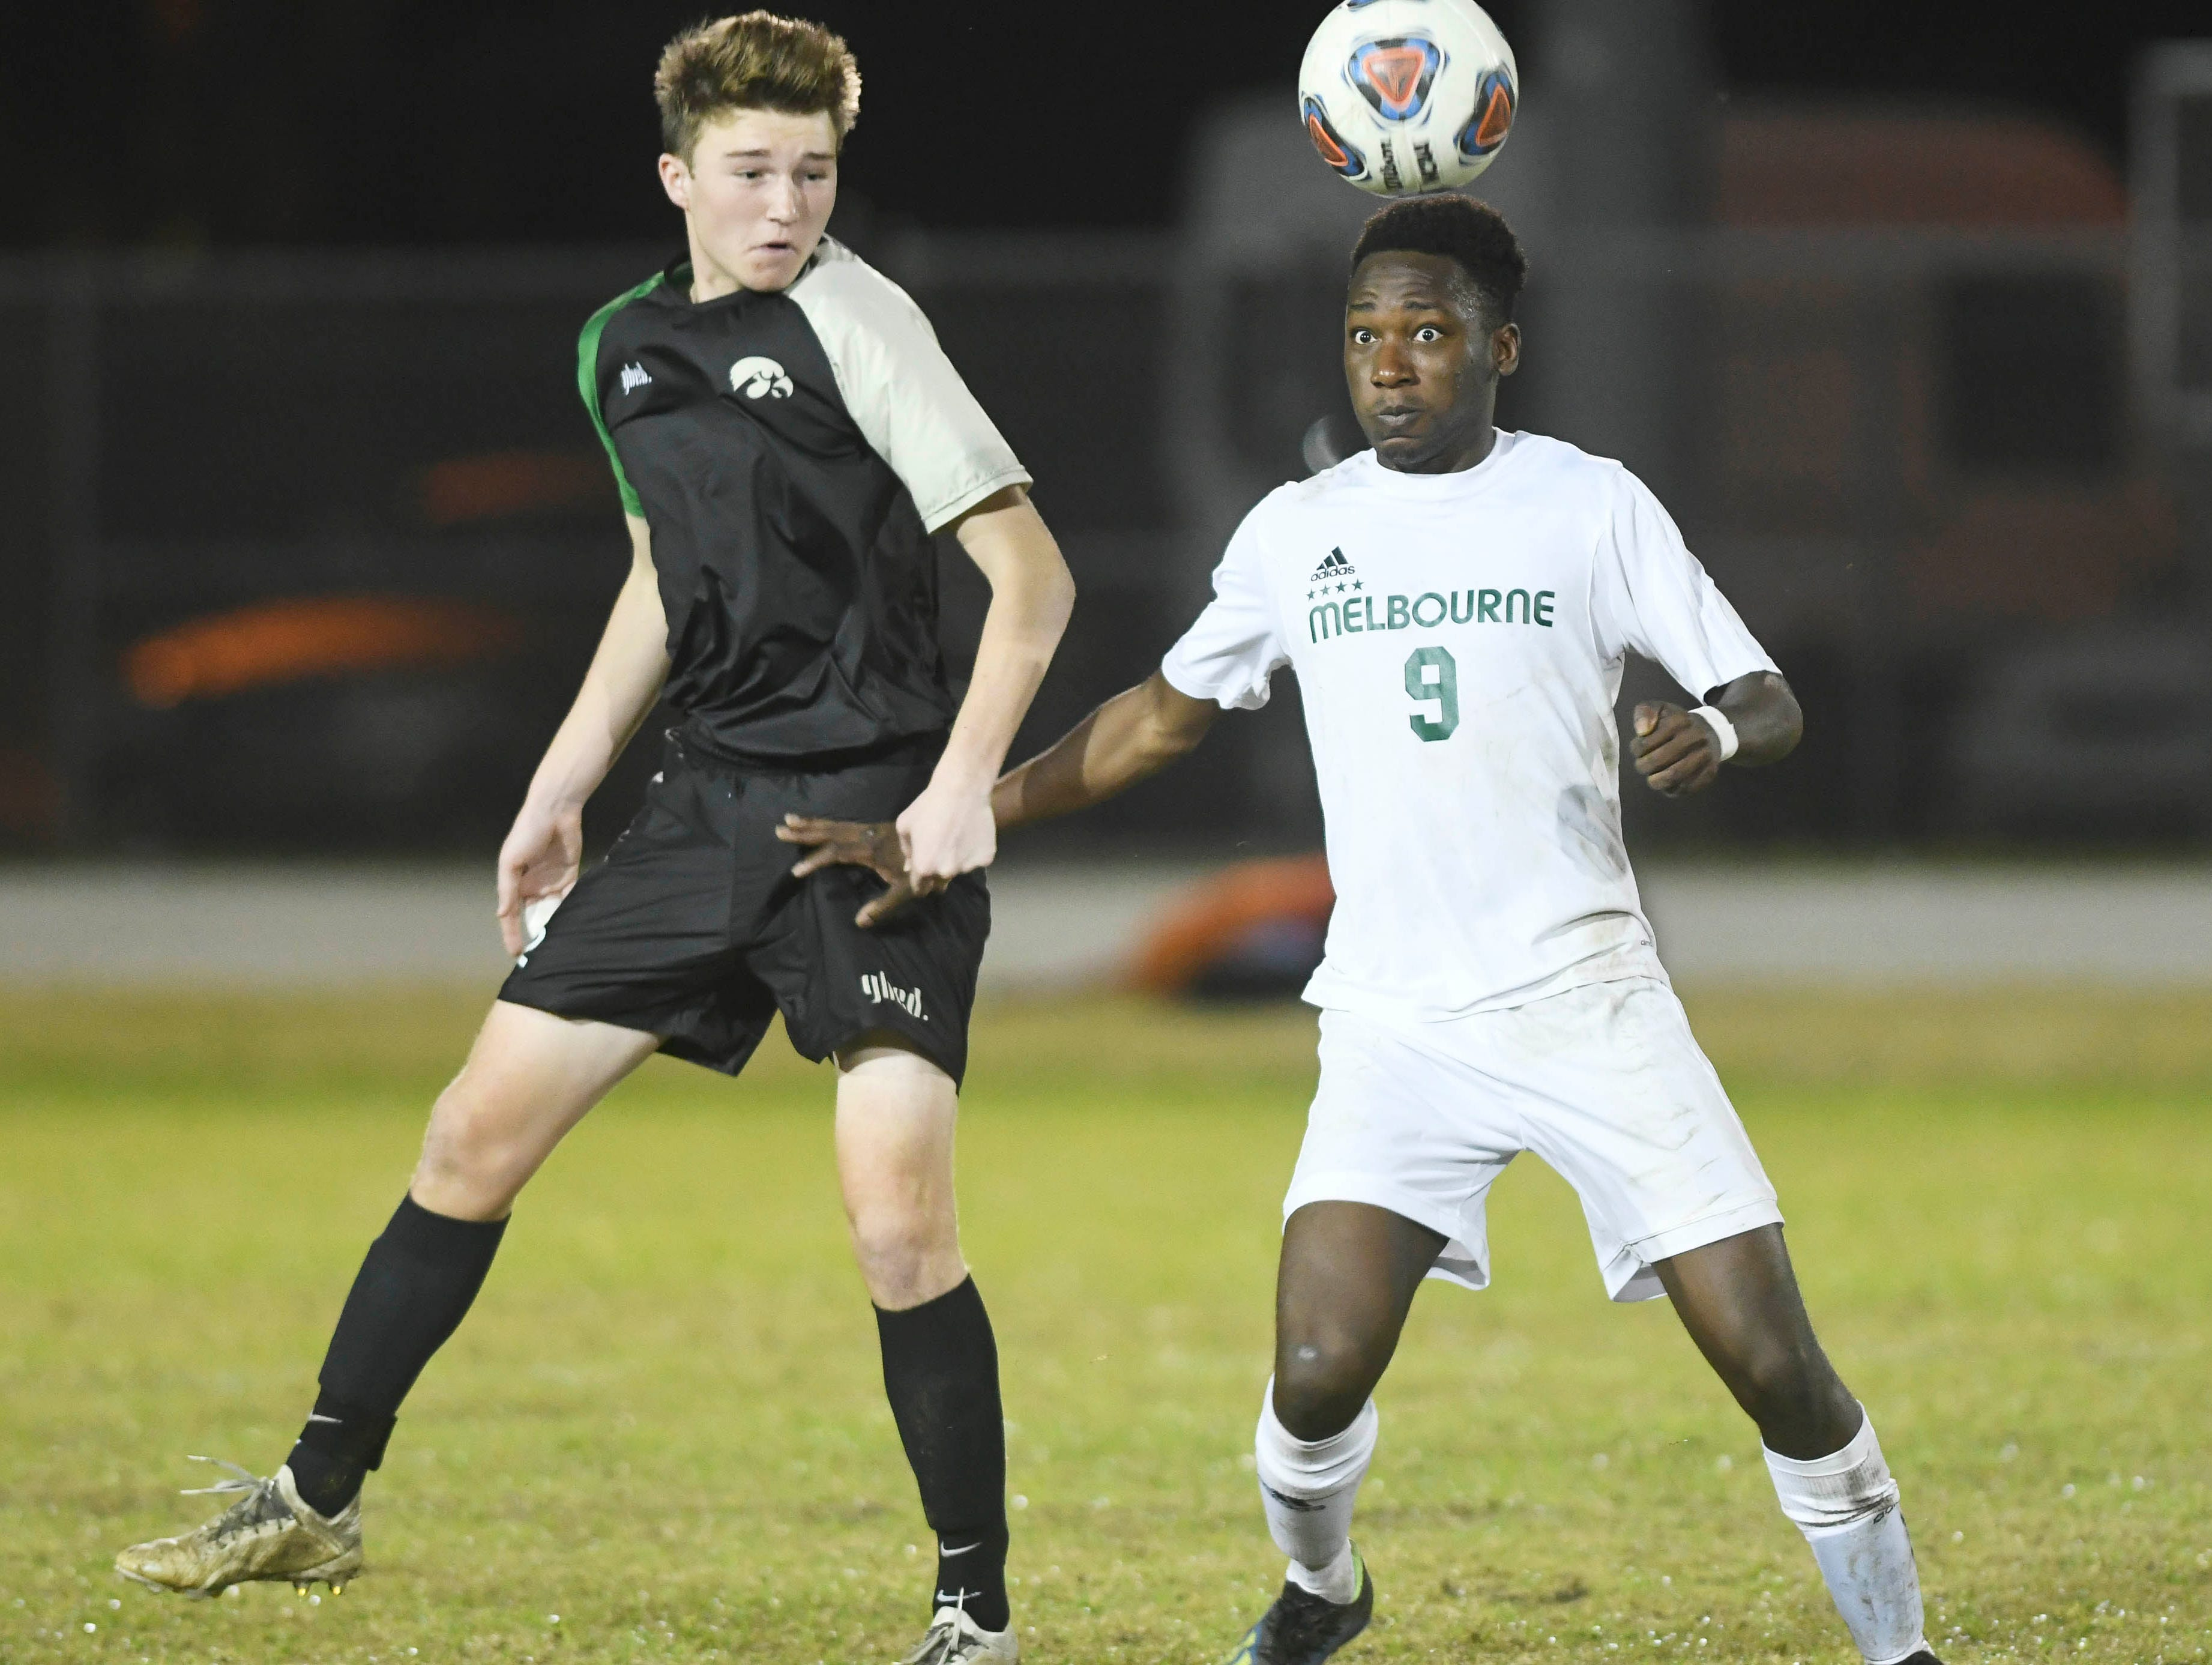 Viera's Evan Kirrane (left) and Osas Osaro of Melbourne look to control the ball during Friday's district championship game at Viera High.